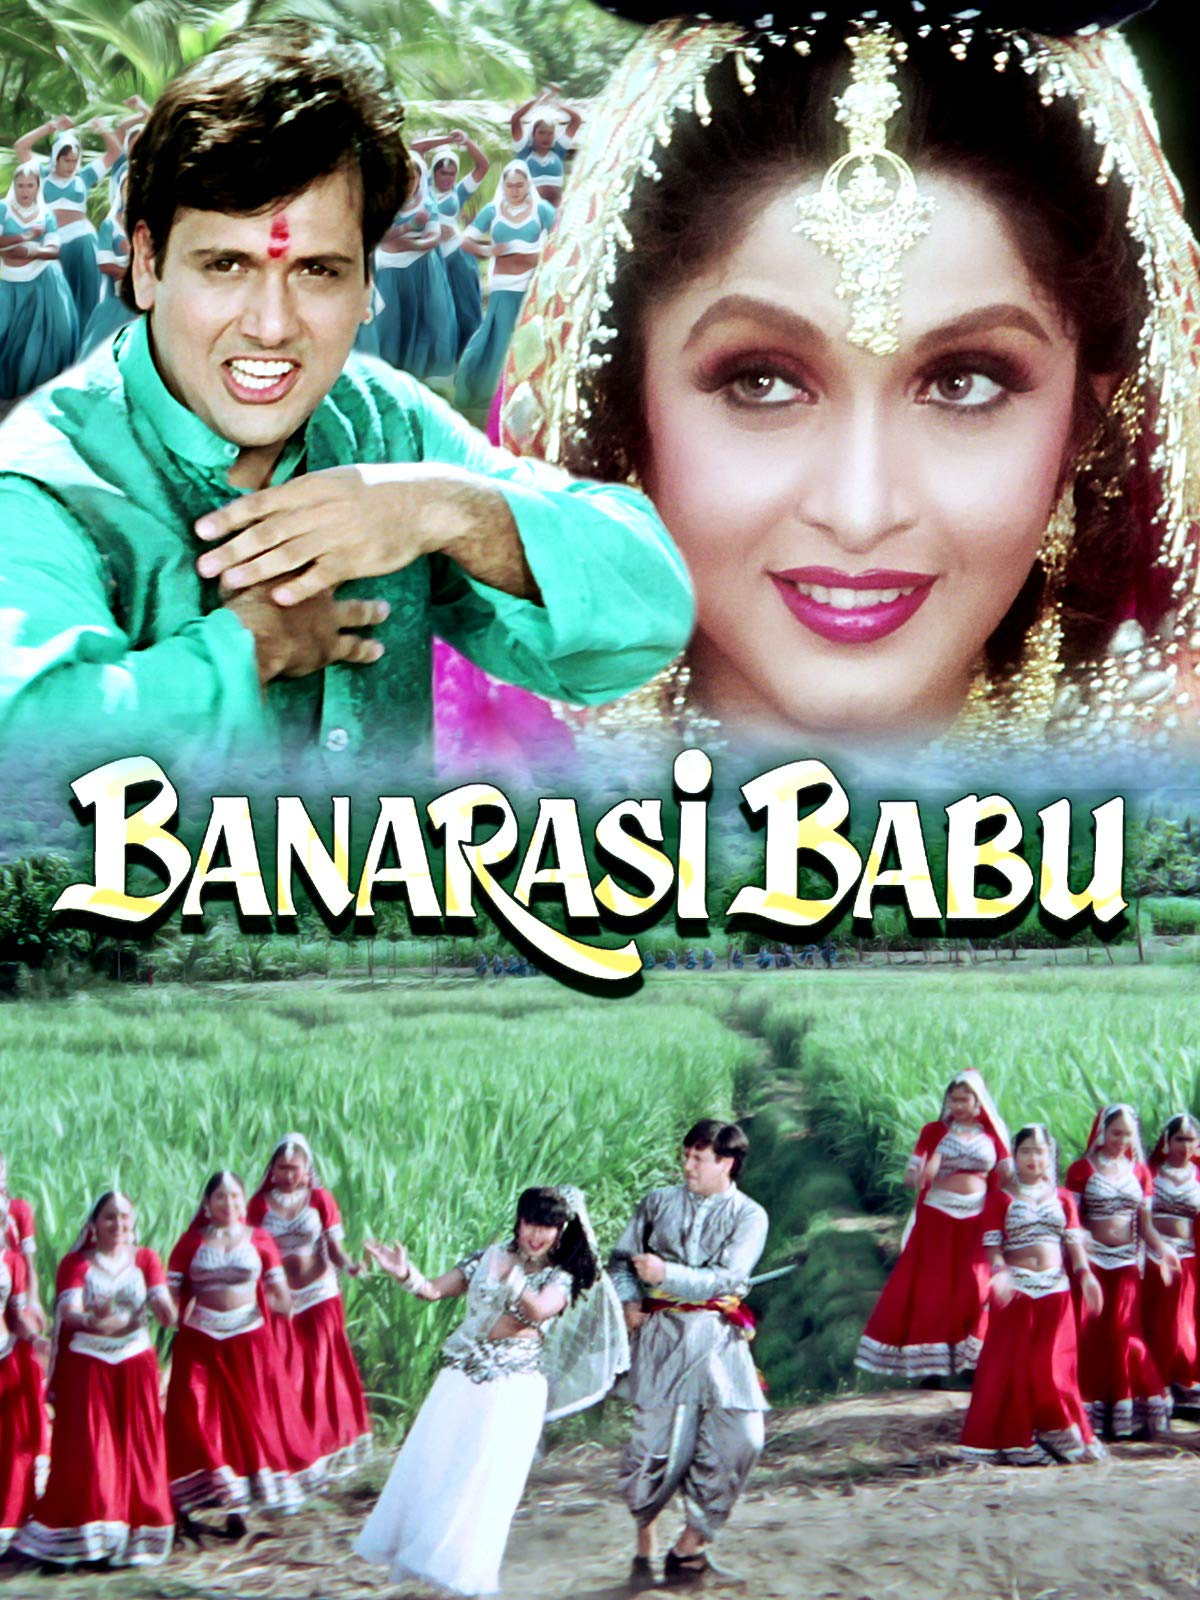 Banarasi Babu (1997) Hindi 720p HEVC HDRip x265 AAC ESubs  [650MB] Full Movie Download